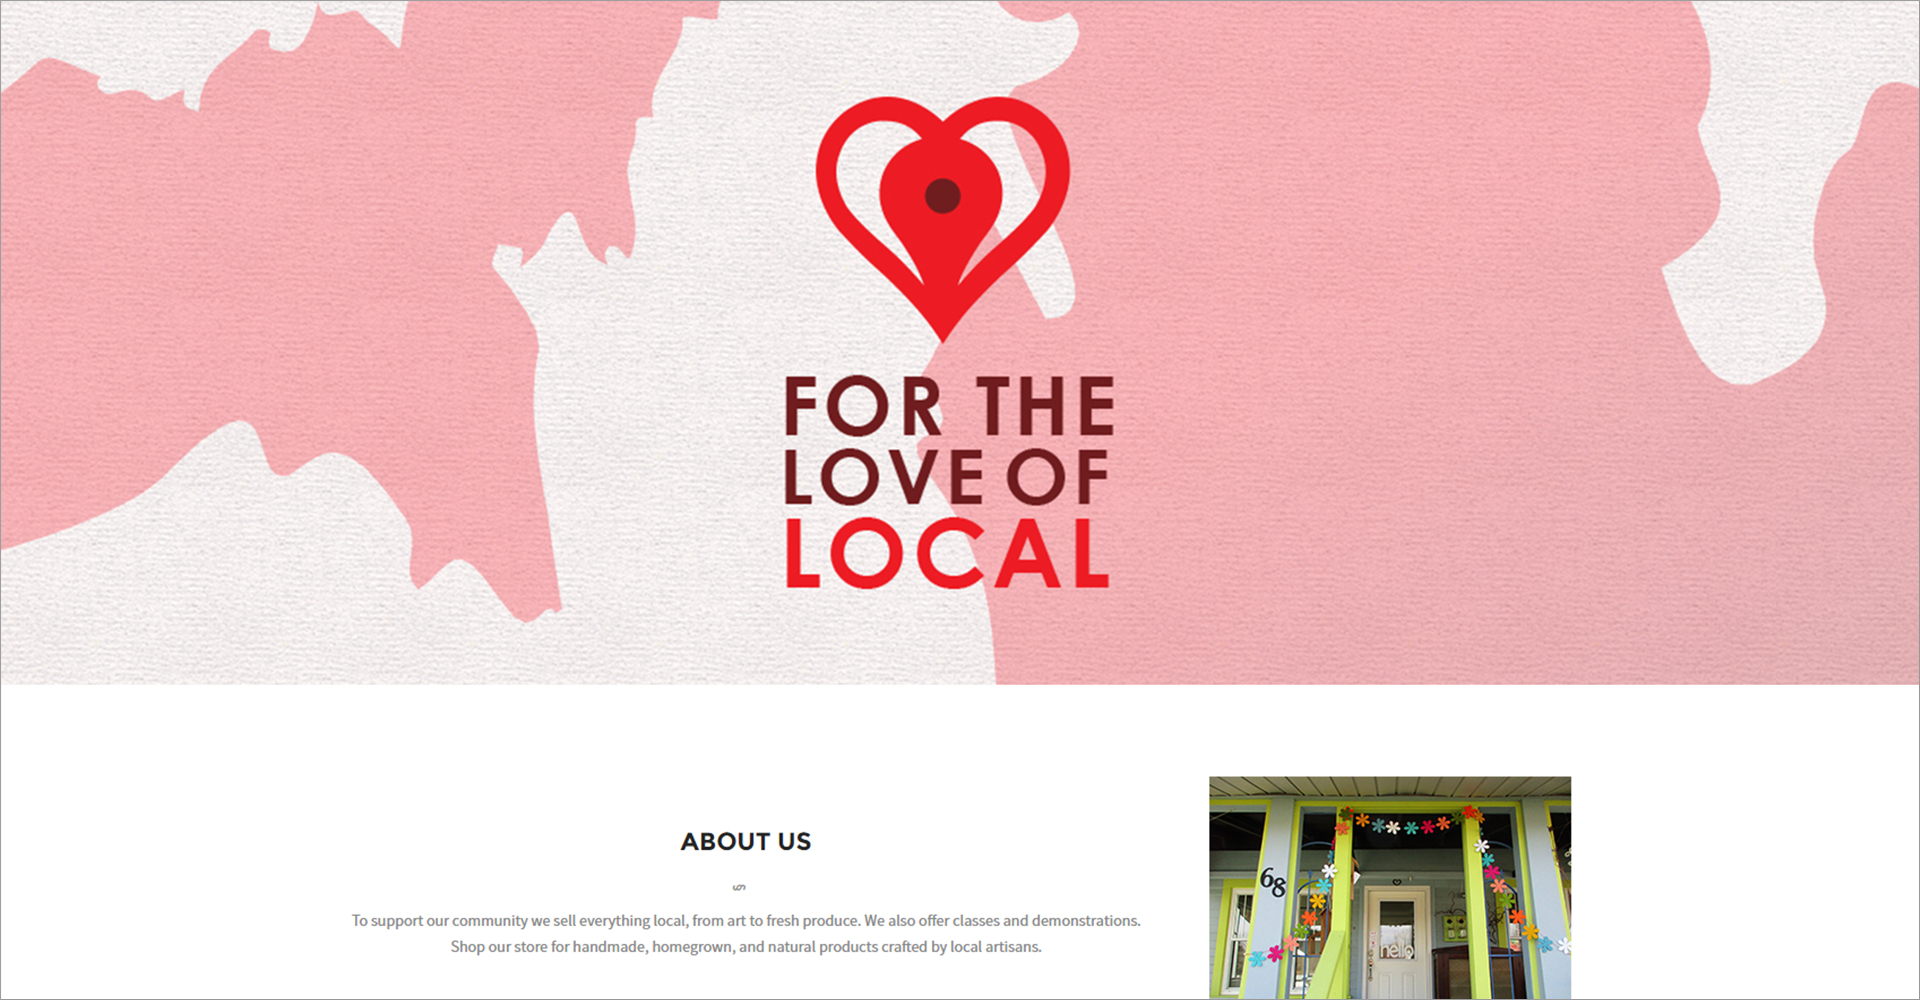 For the Love of Local - Zoda Design